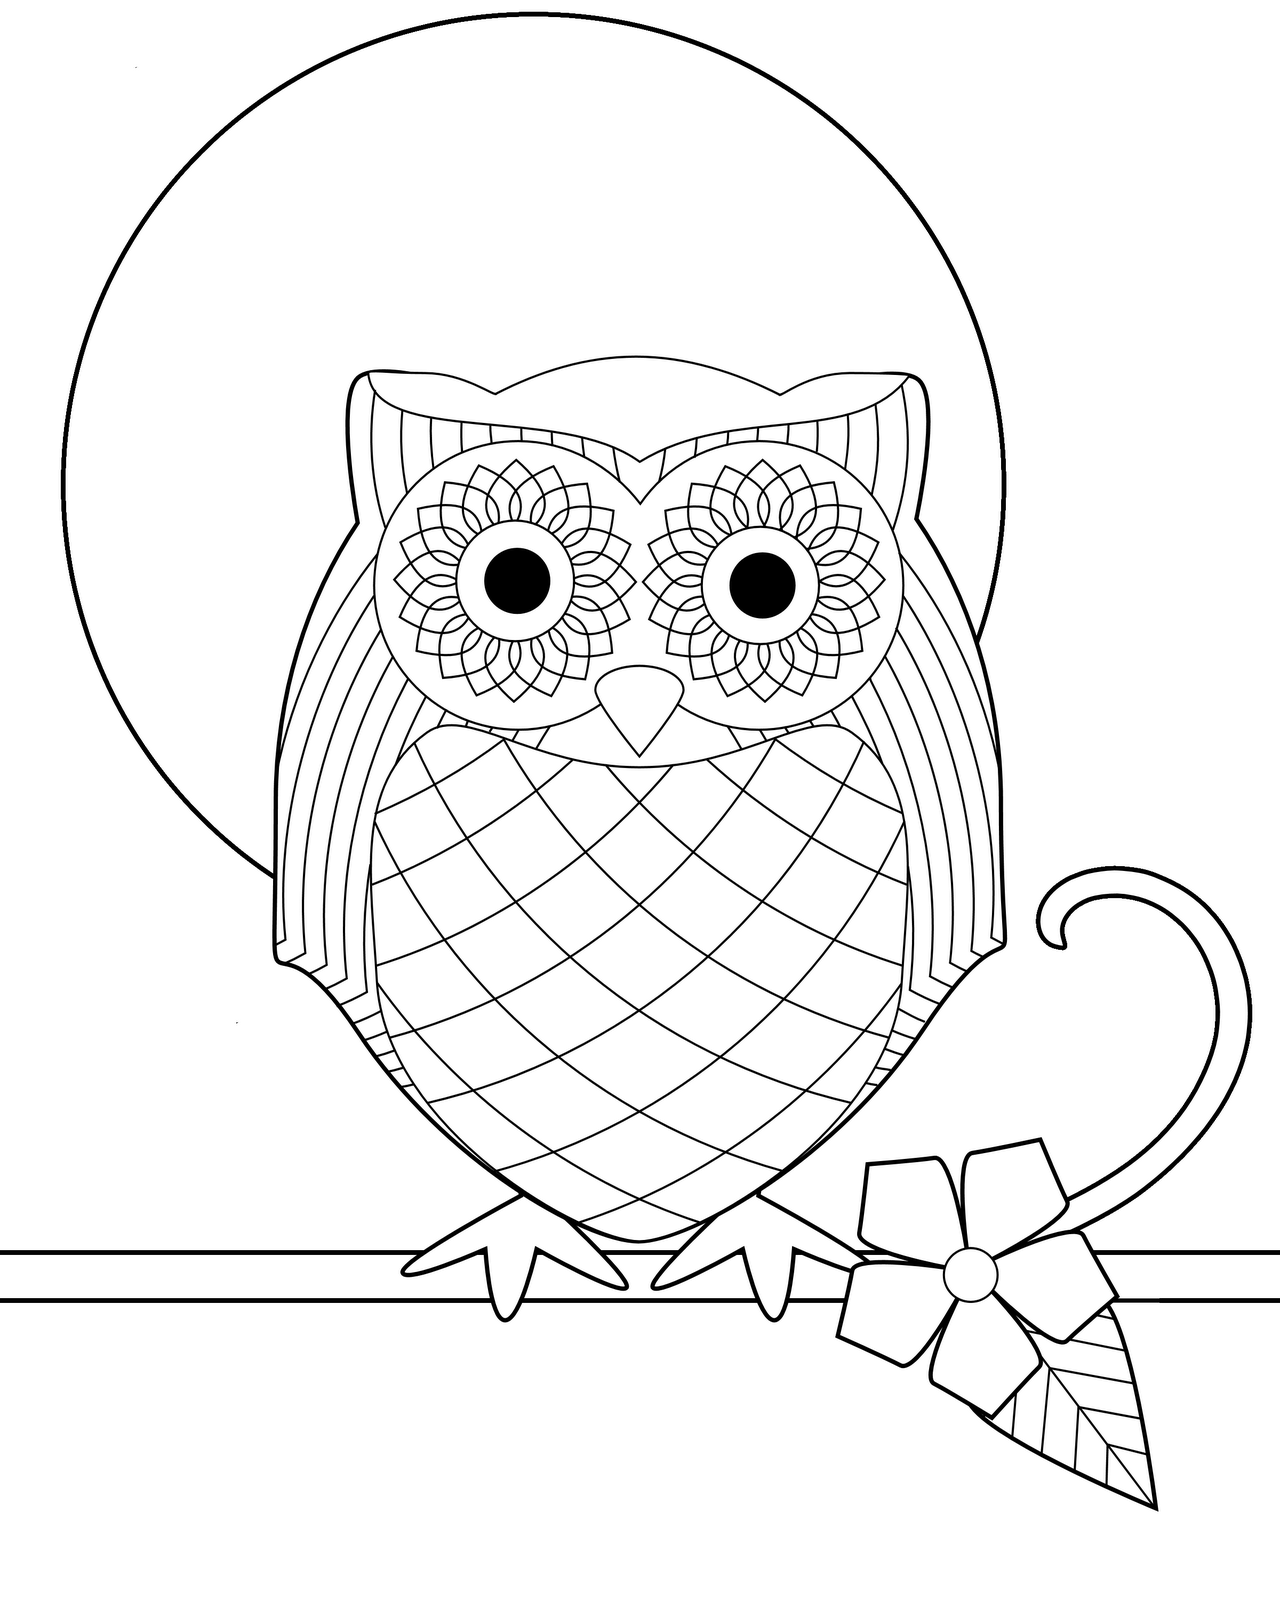 baby owl coloring pages - Cute Owl Printable Coloring Pages